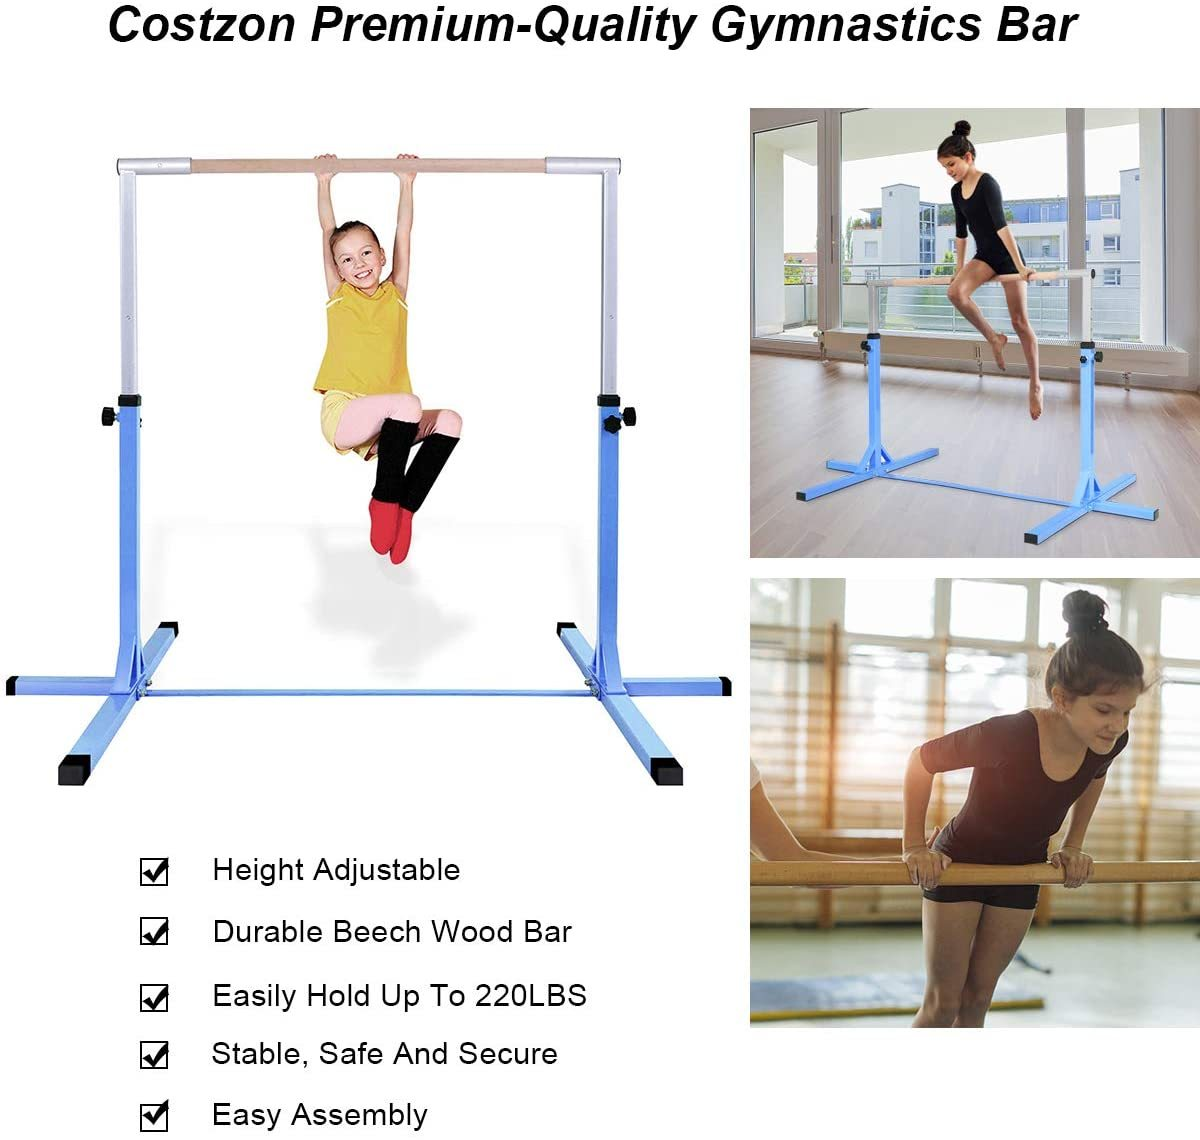 Gymnastic Training Bar, Junior Horizontal Kip Bar, 3' to 5' Height Adjustable, Gymnasts 1-4 Levels, 220 lbs Weight Capacity, Ideal for Indoors, Home Practice